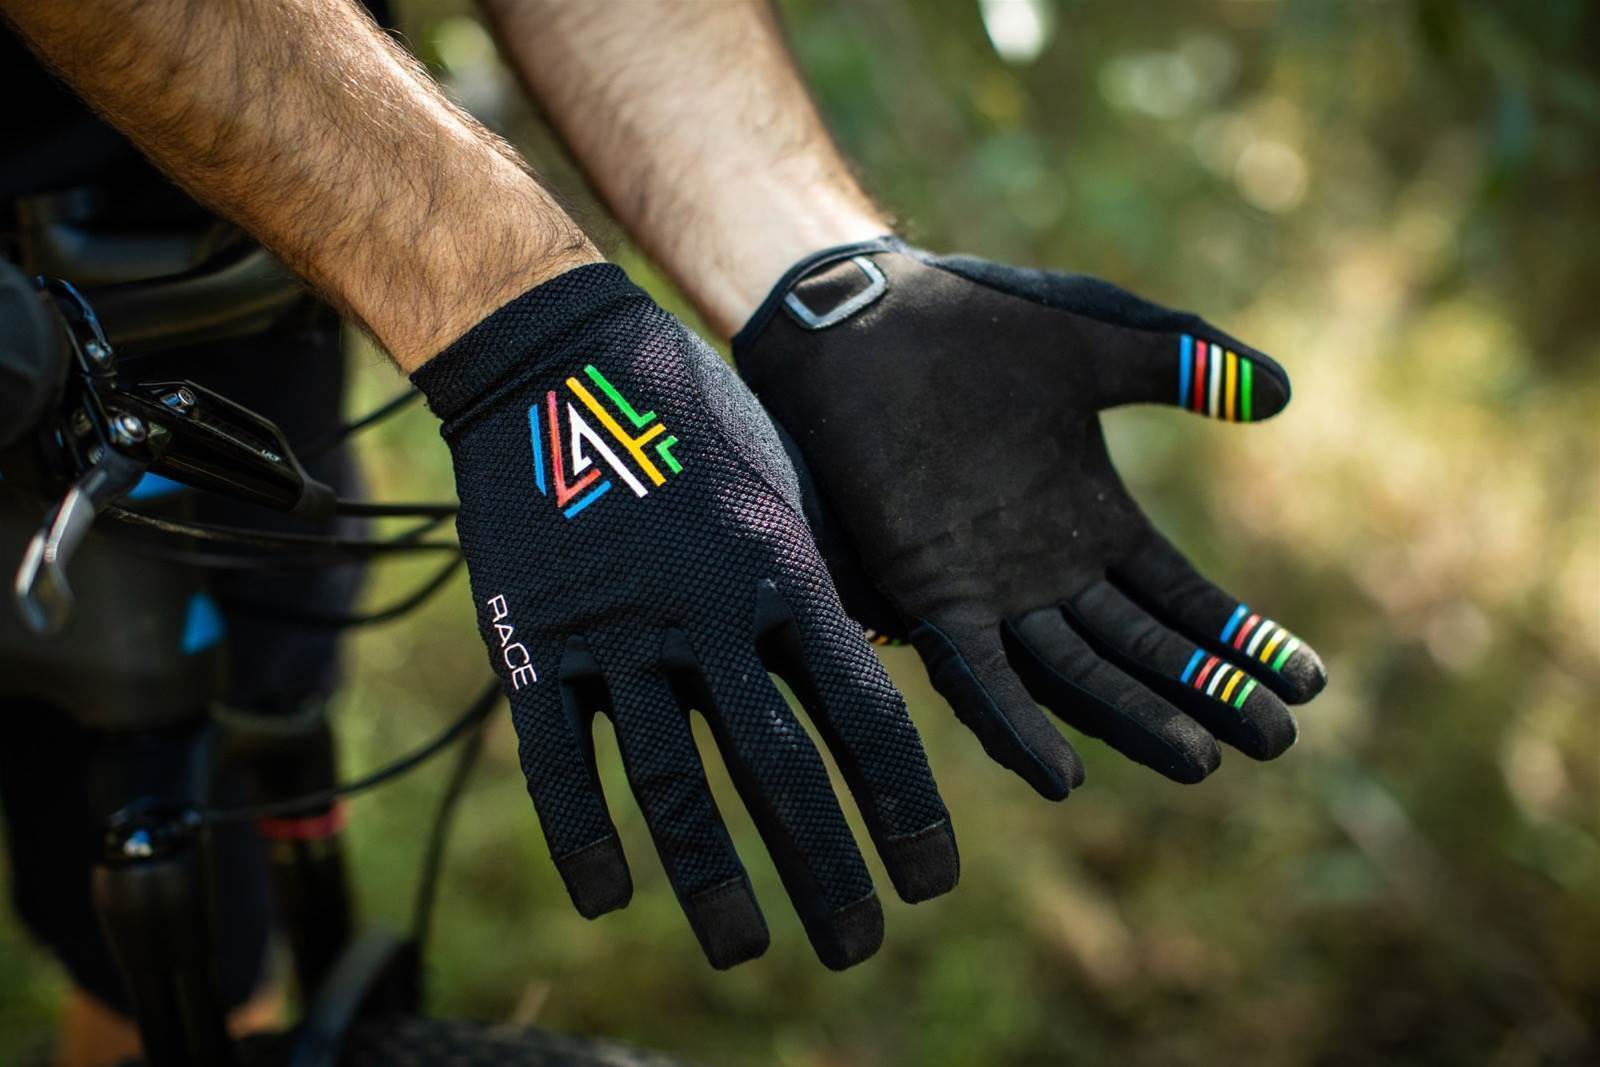 TESTED: 4SHAW Race Glove V4